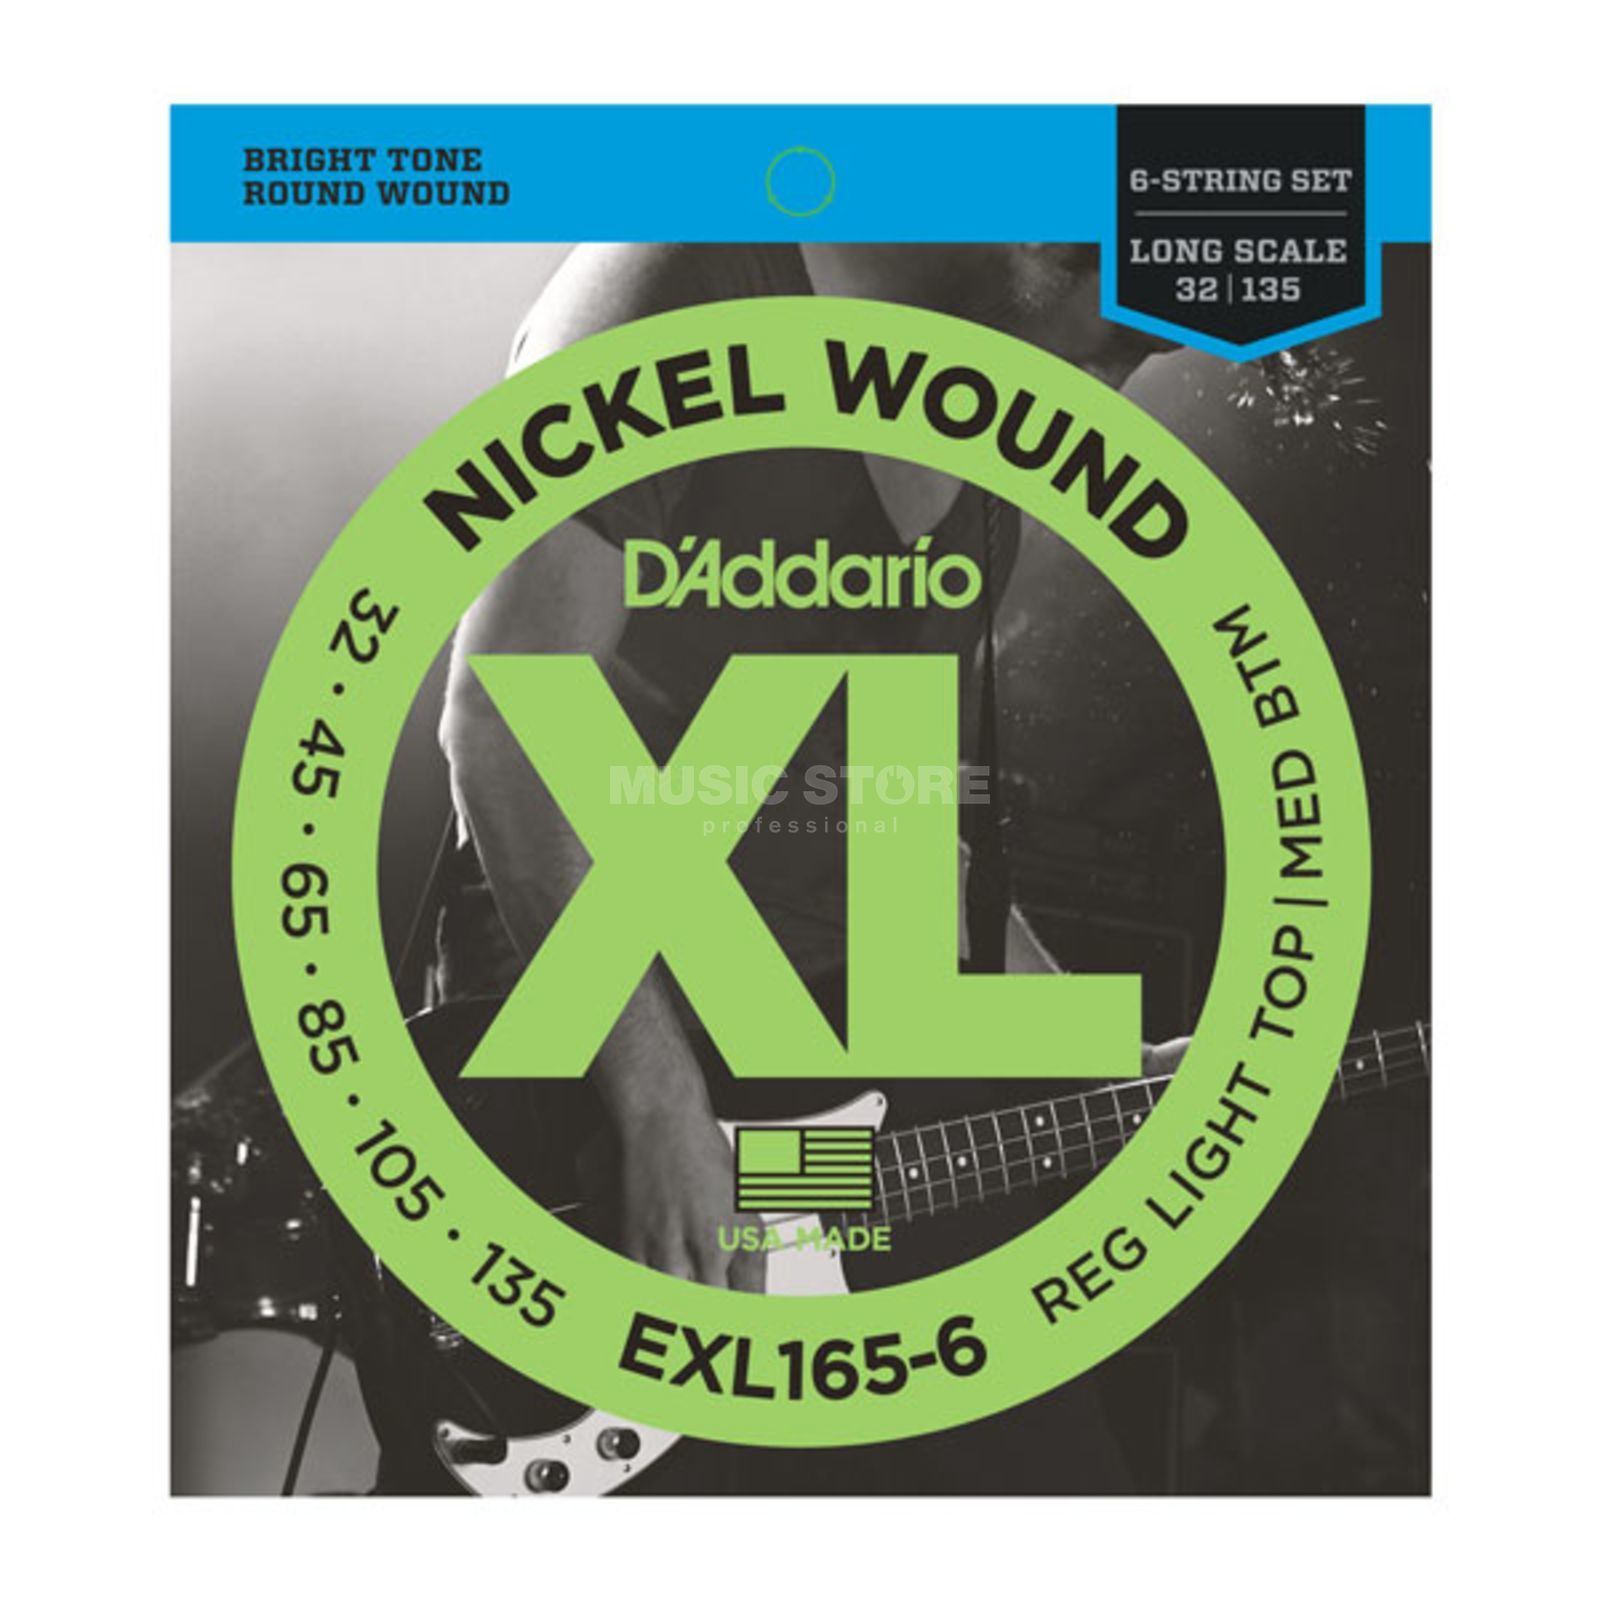 D'Addario Bass Strings XL Nickel 32-135 32-45-65-85-105-135, EXL165-6 Zdjęcie produktu